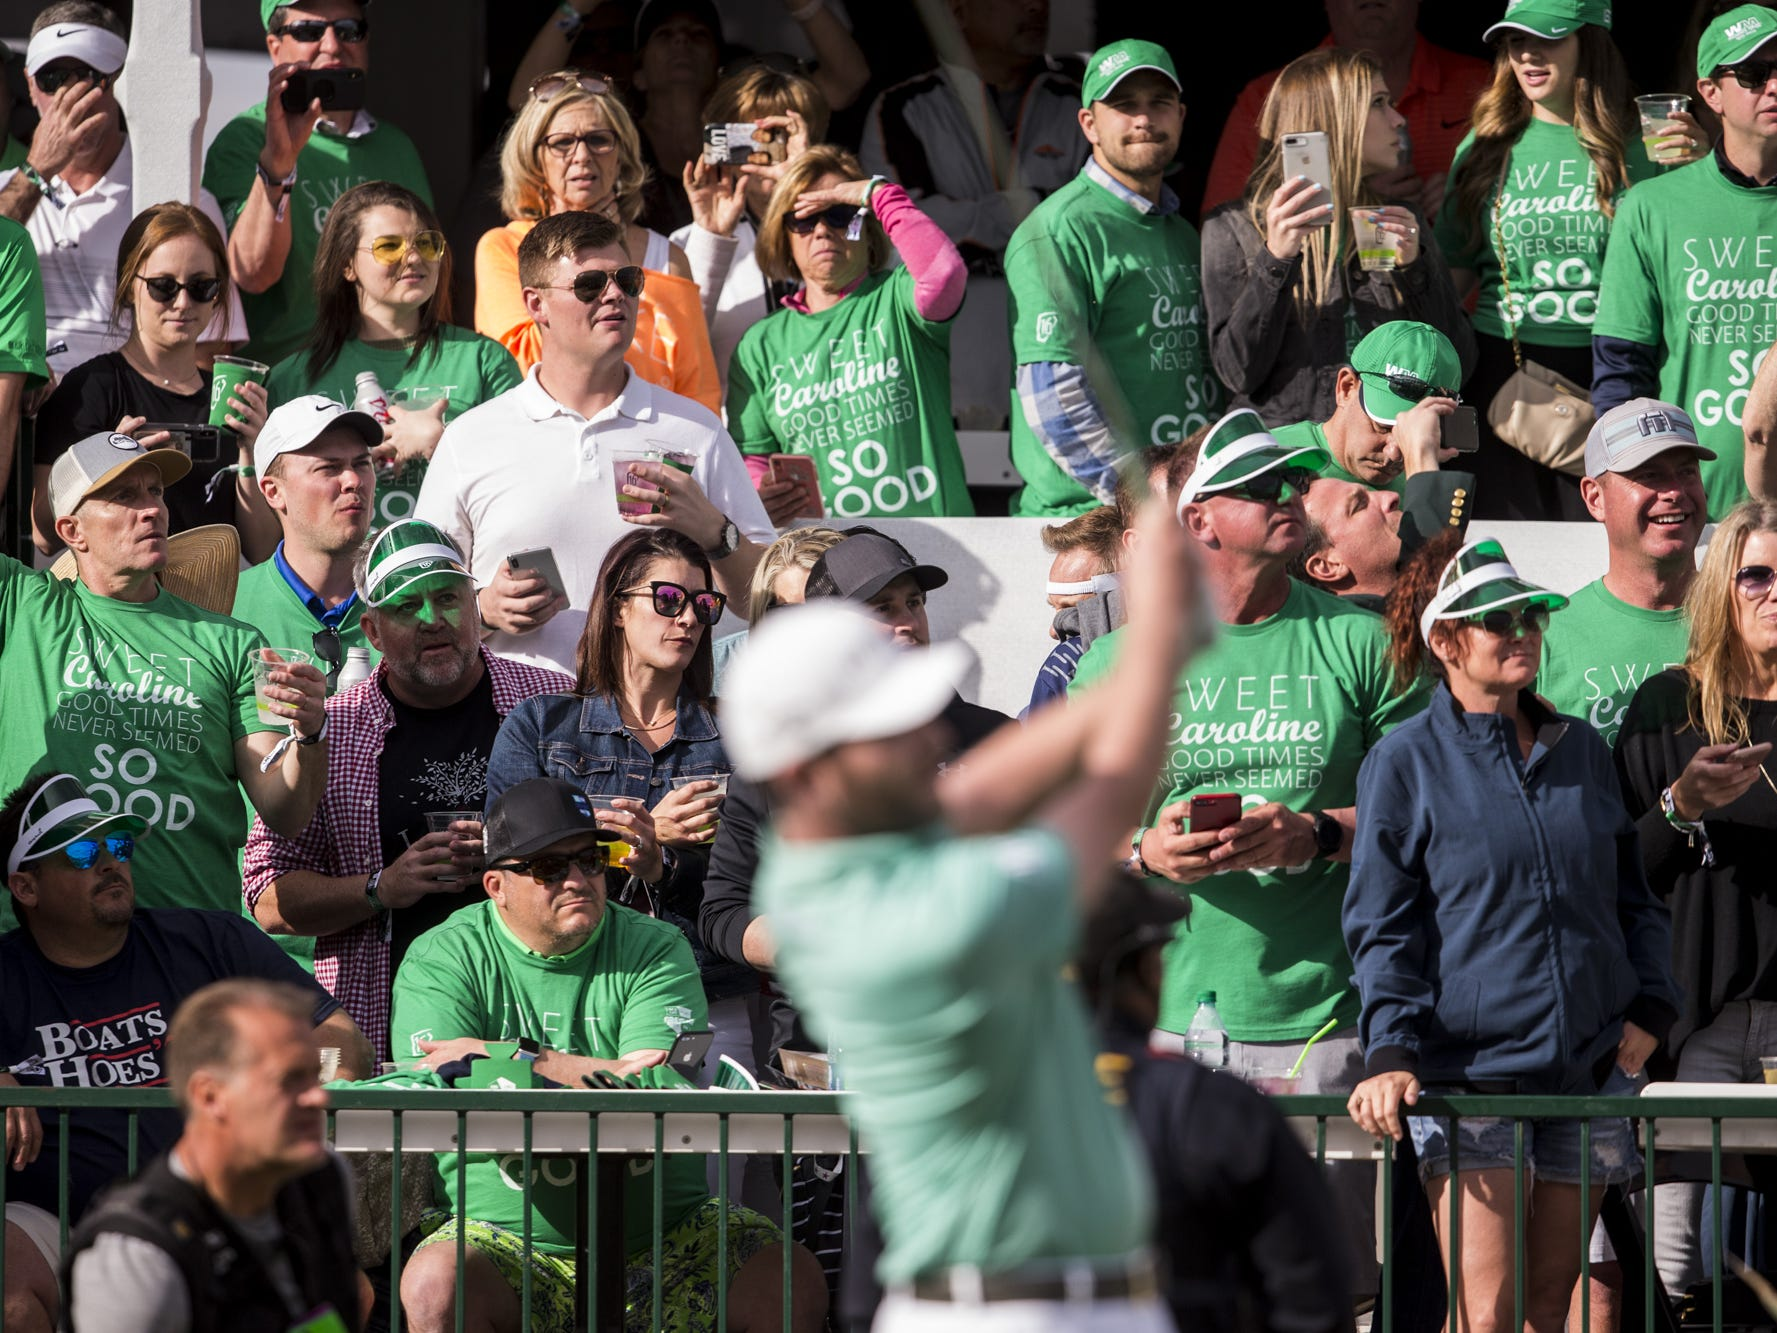 Fans watch as Branden Grace tees off on the 16th hole during Round 3 of the Waste Management Phoenix Open on Saturday, Feb. 2, 2019, at TPC Scottsdale in Scottsdale, Ariz.